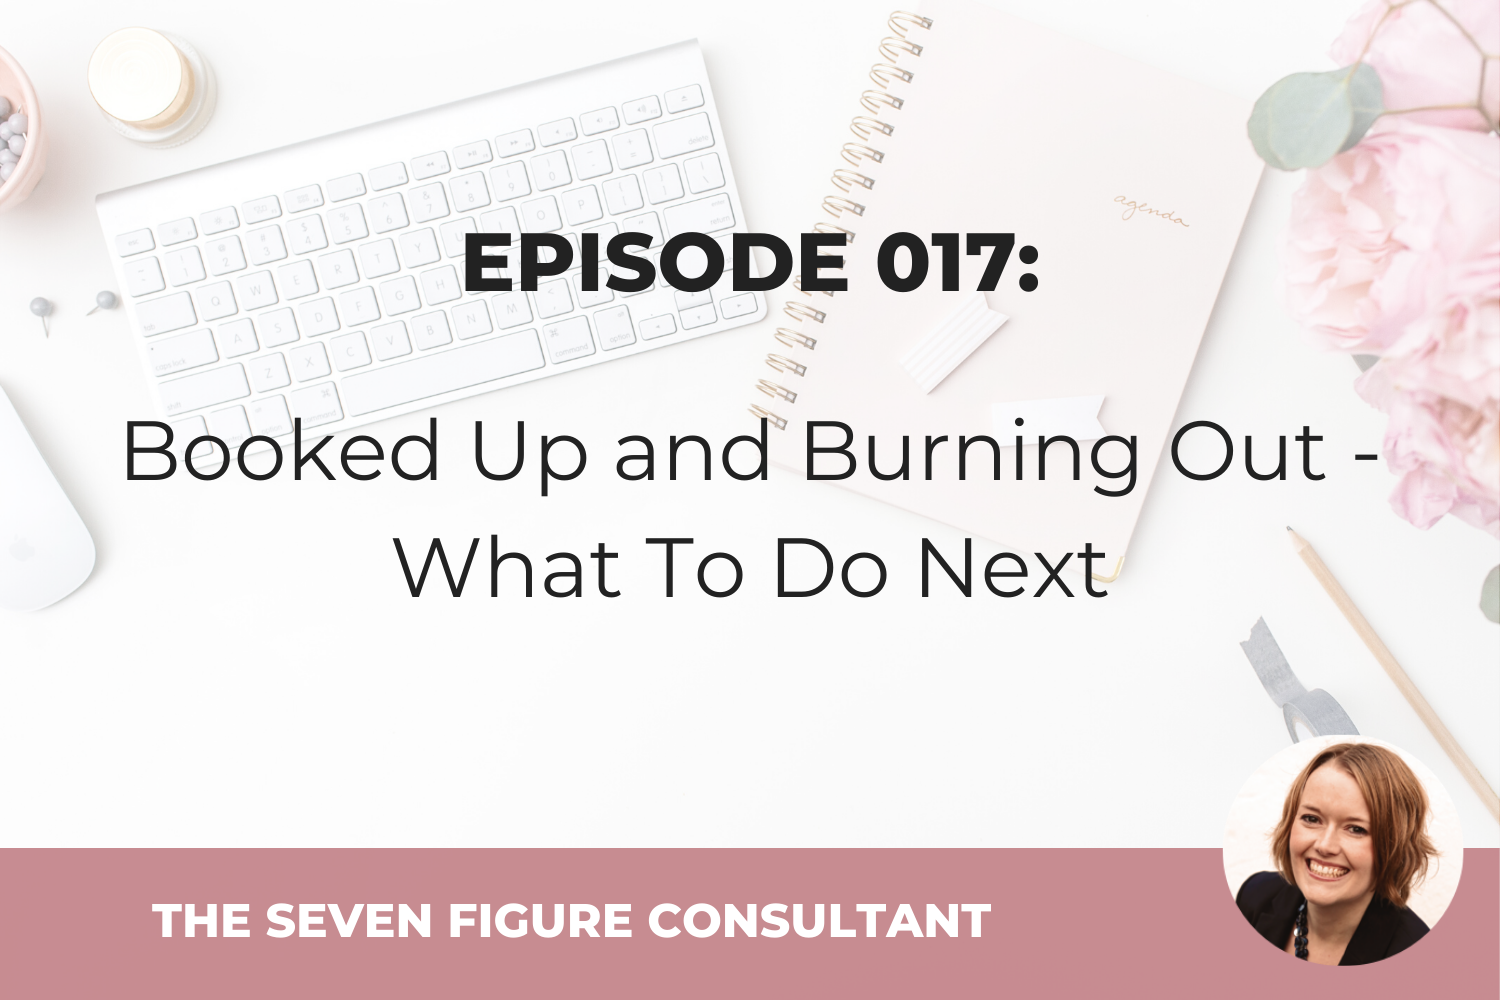 Episode 017: Booked Up and Burning Out – What To Do Next